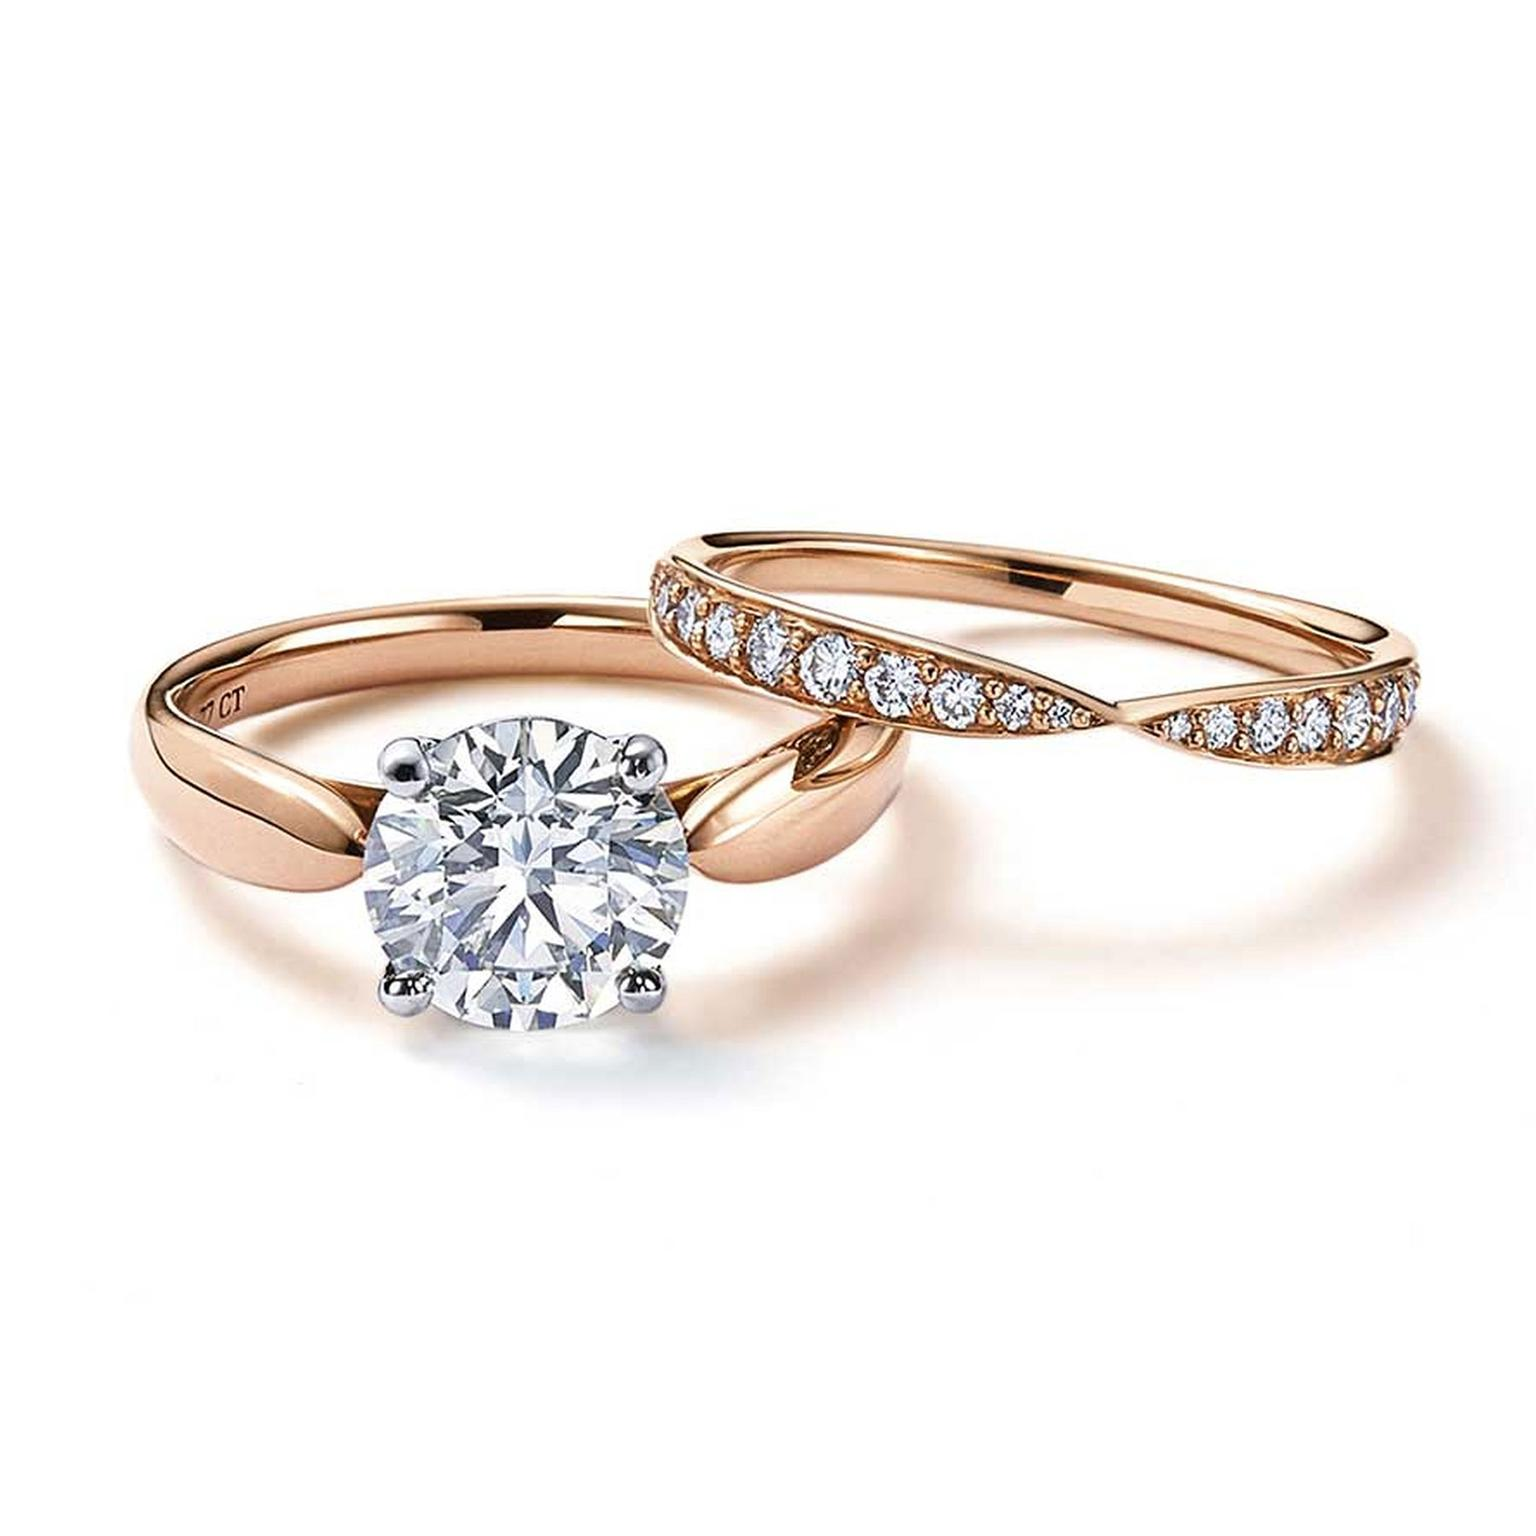 Tiffany has captured our hearts with its rose gold for Tiffany weddings rings